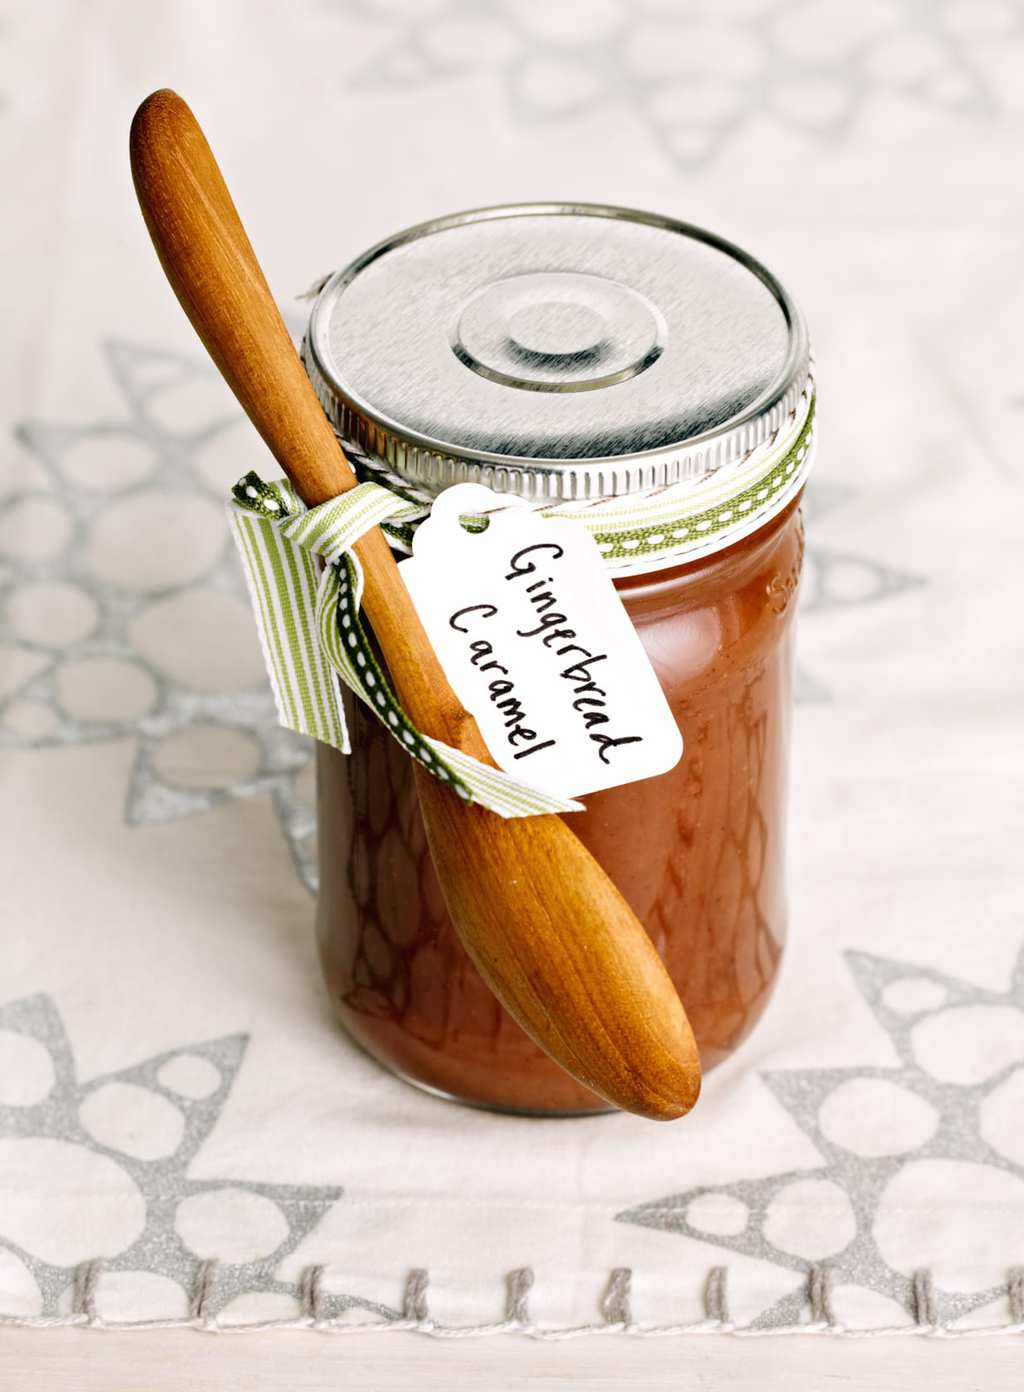 Gingerbread Caramel Sauce in a jar with a wooden spoon